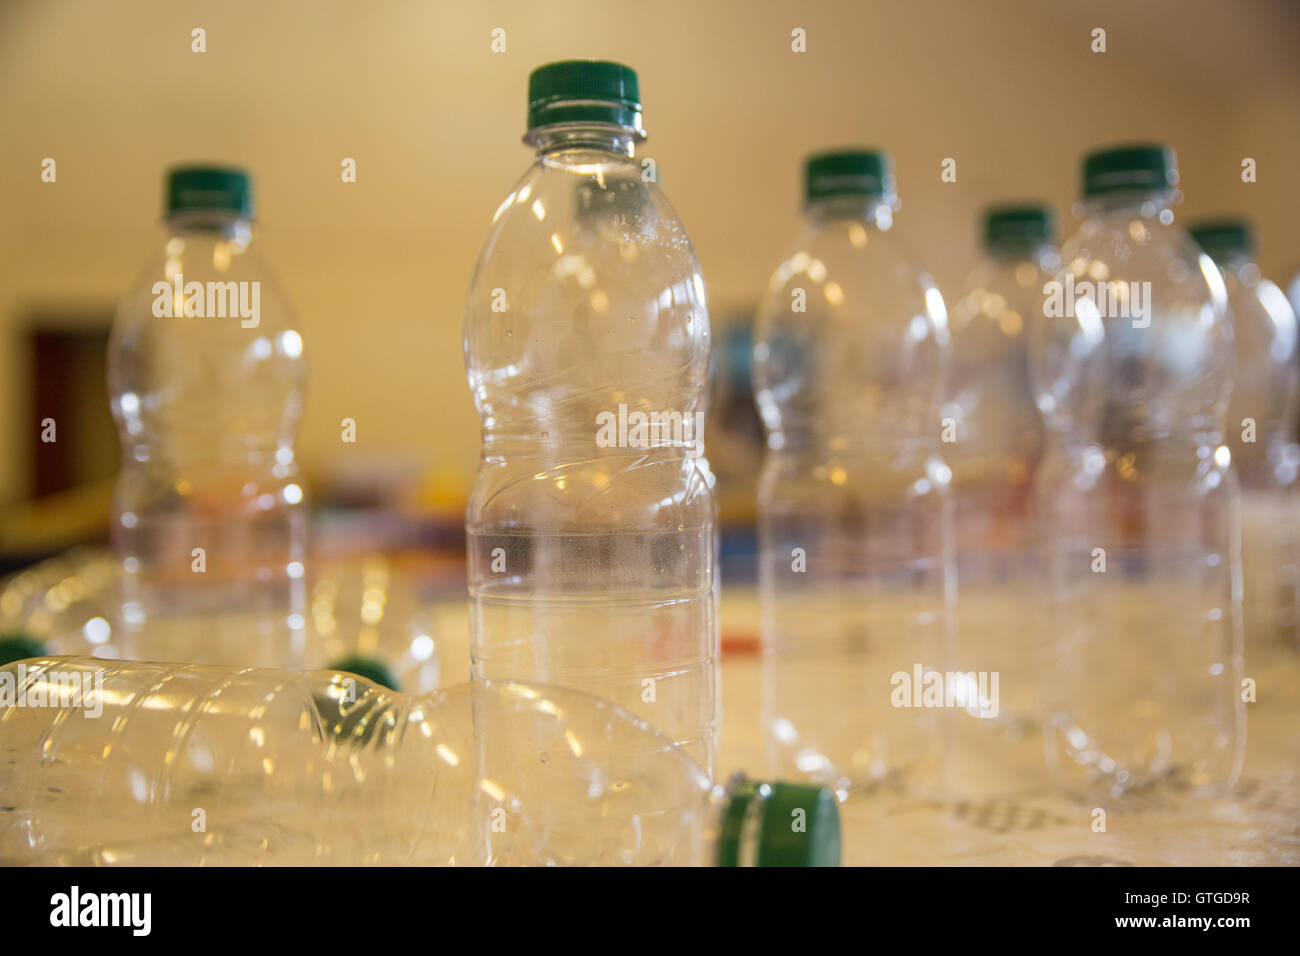 Transparent plastic water bottles standing on a table - Stock Image